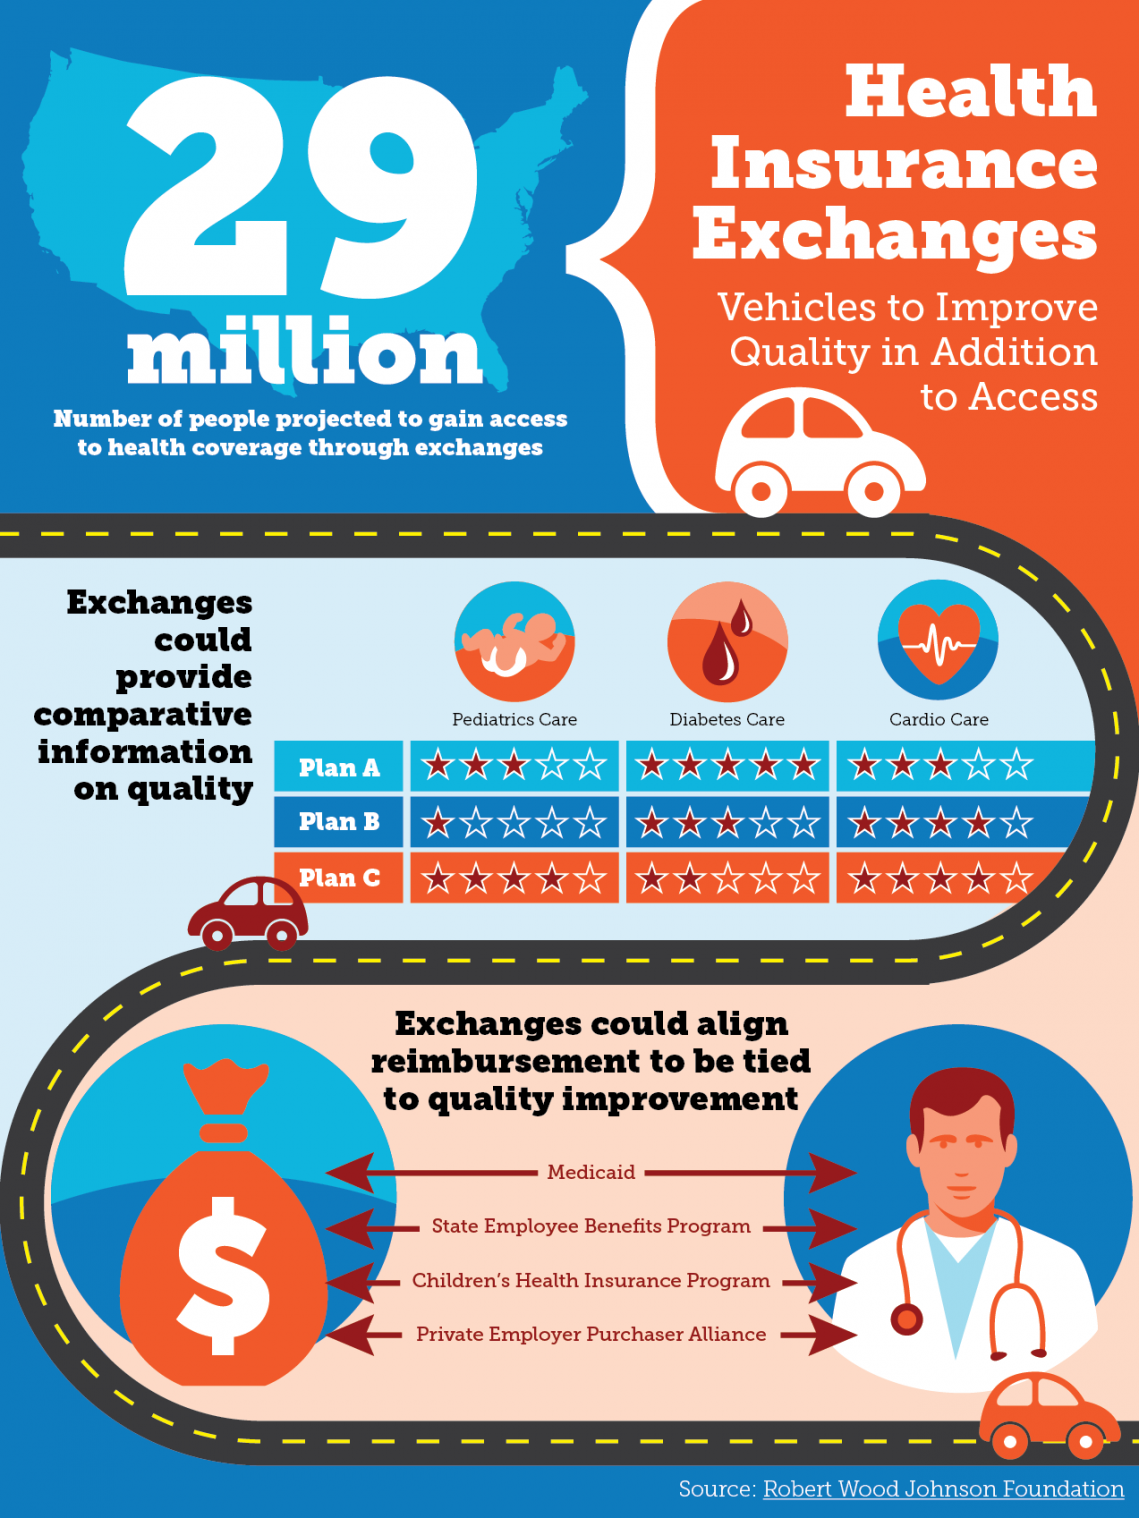 Health Insurance Exchanges: Vehicles to Improve Quality in Addition to Access